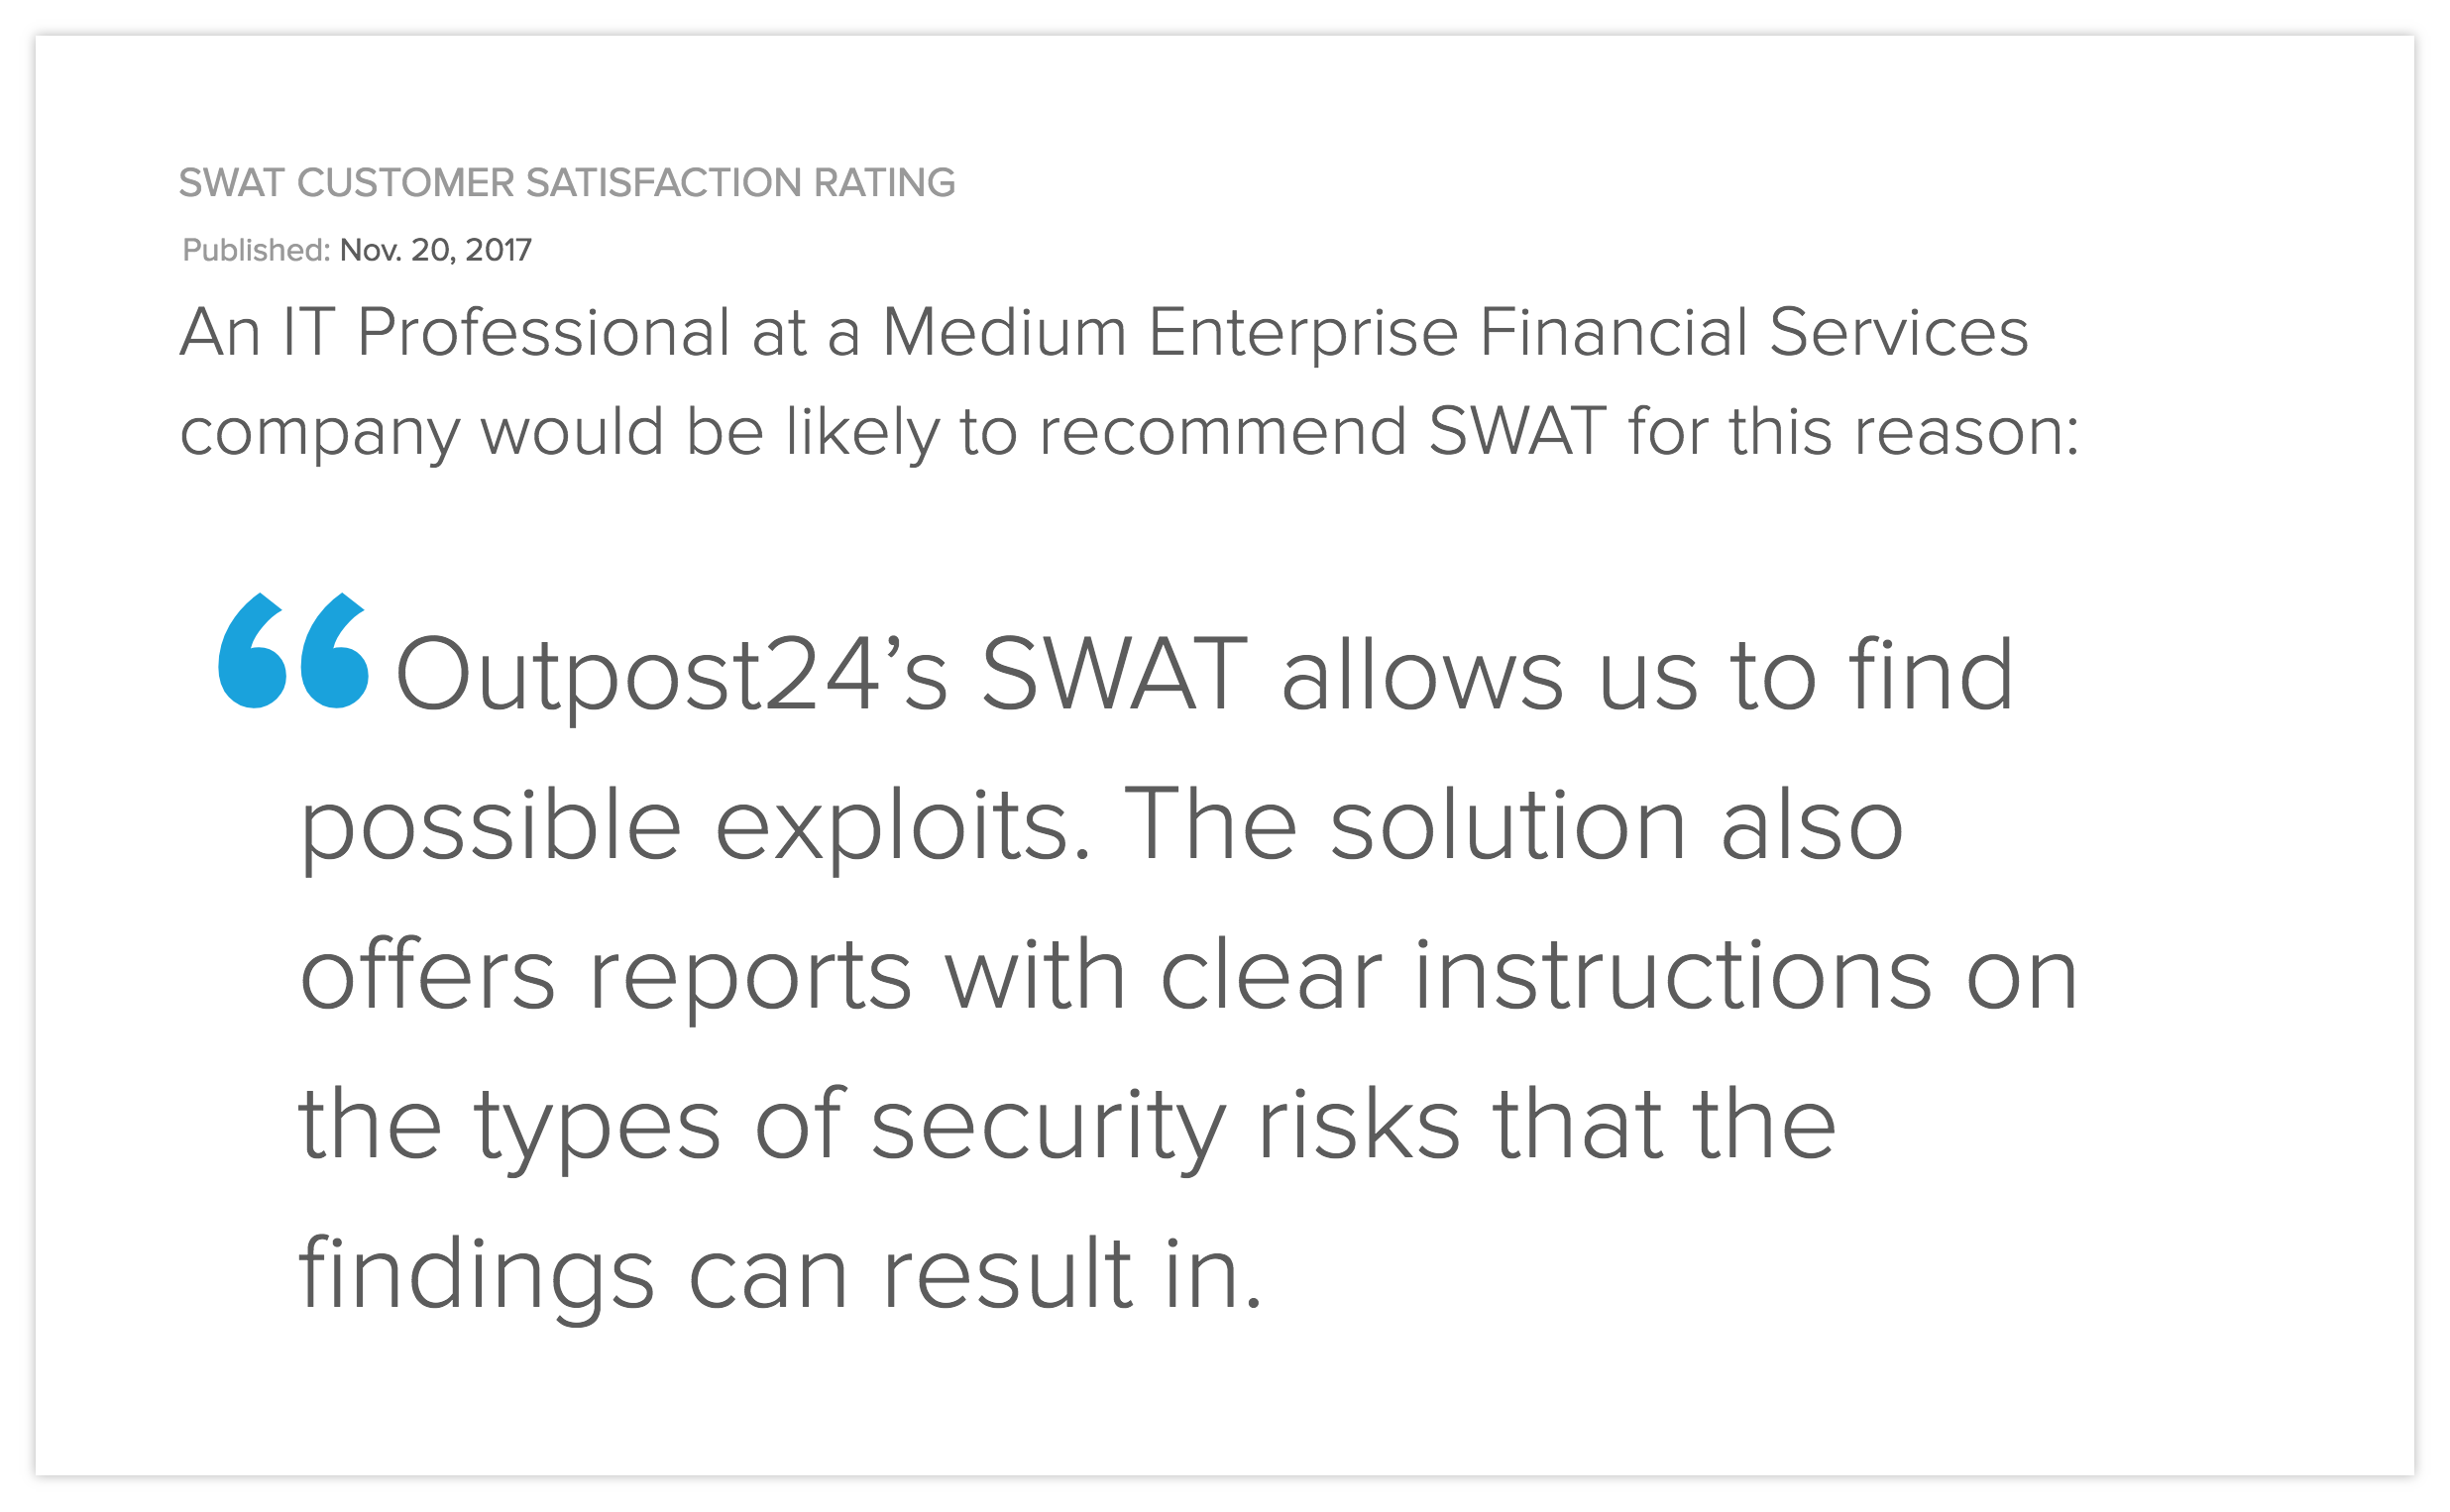 Outpost24's SWAT allows us to find possible exploits. The solution also offer reports with clear instructions on the types of security risks that the findings can result in.